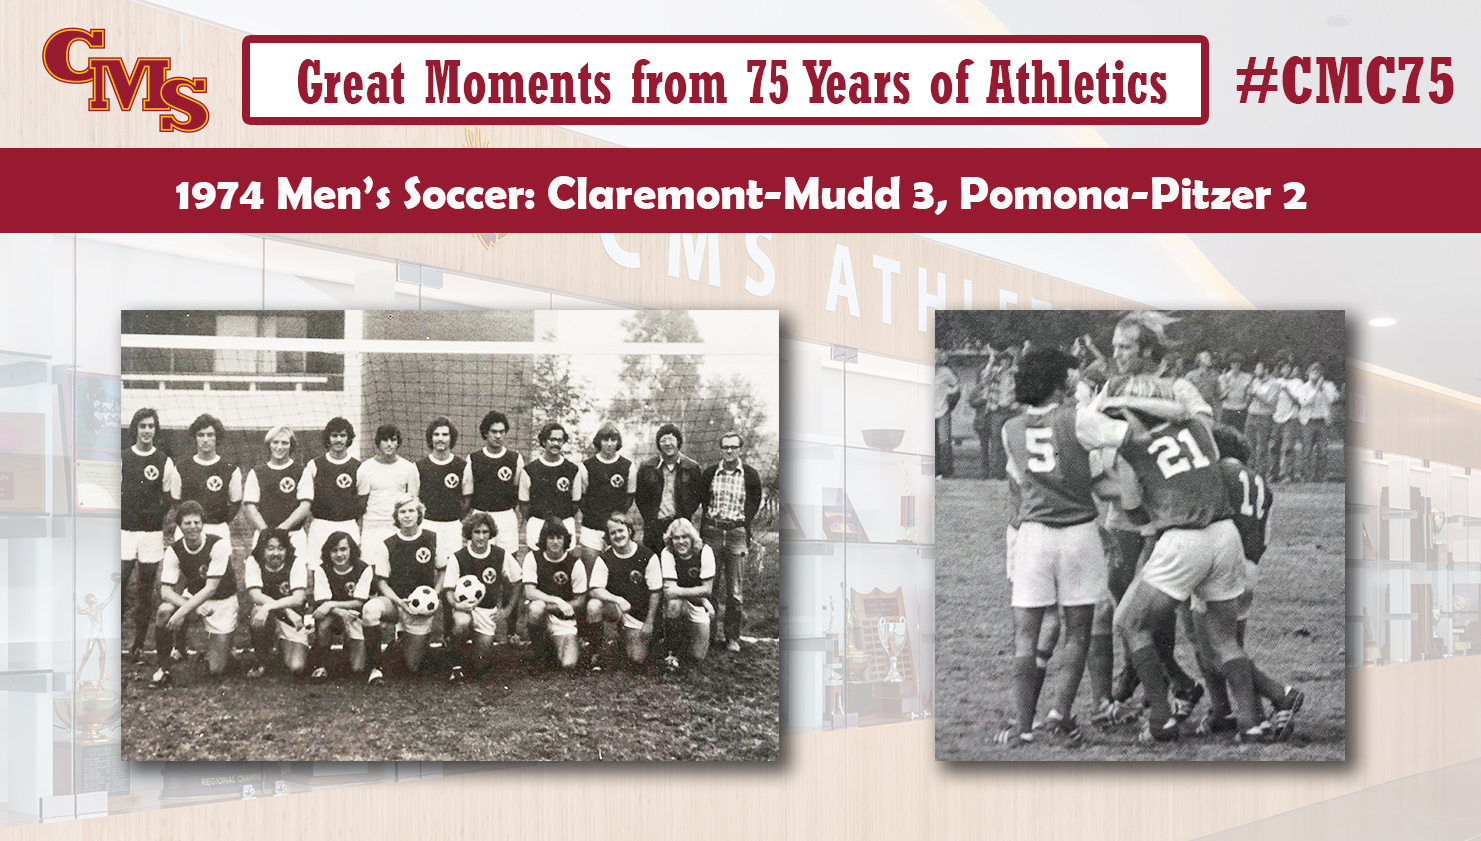 A team shot from the 1974 soccer team and a goal celebration. Words over the photo read: Great Moments from 75 Years of Athletics, 1974 Men's Soccer: Claremont-Mudd 3, Pomona-Pitzer 2